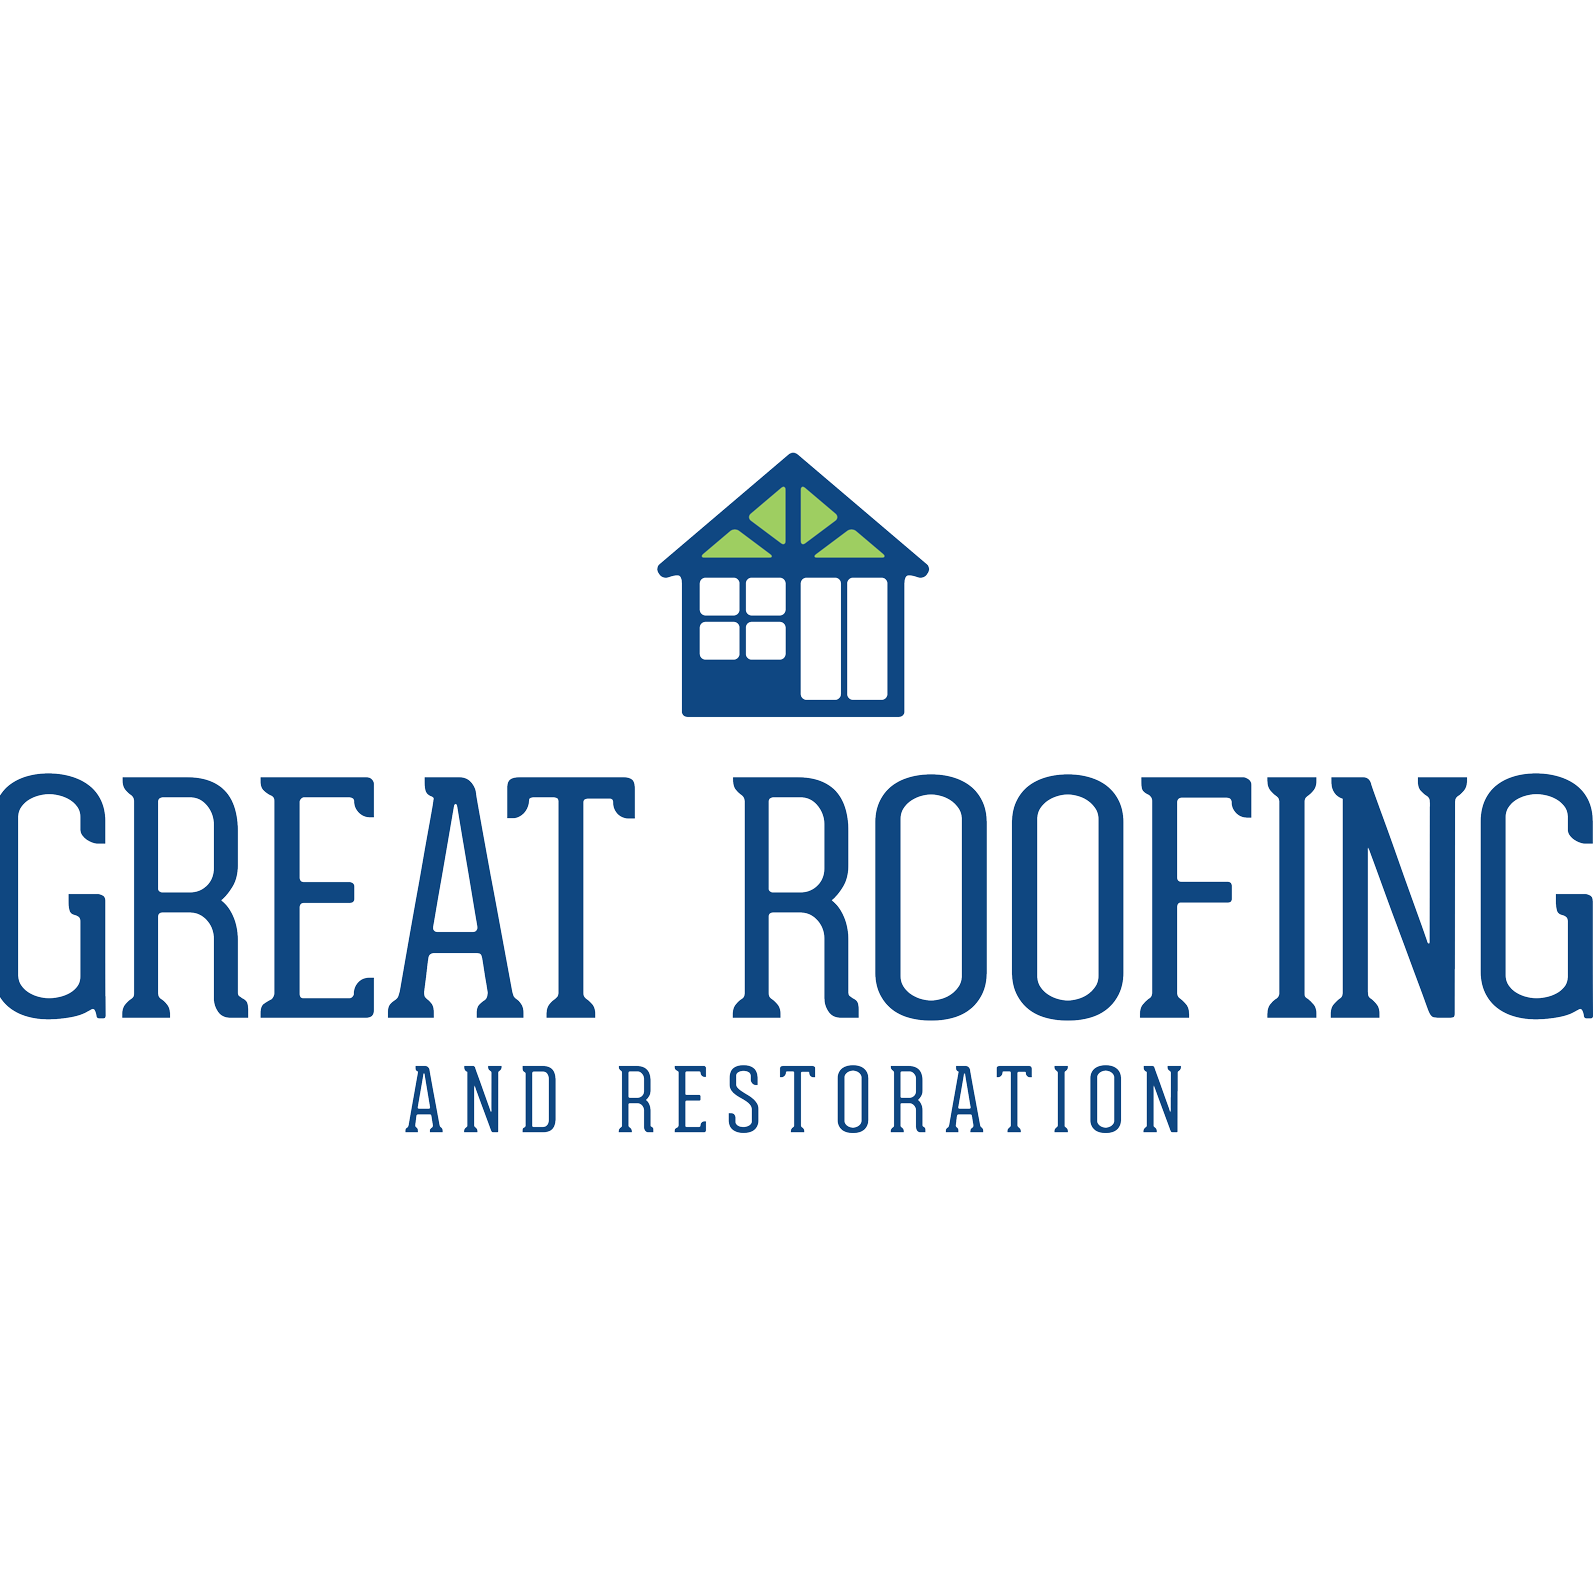 Great Roofing & Restoration image 0